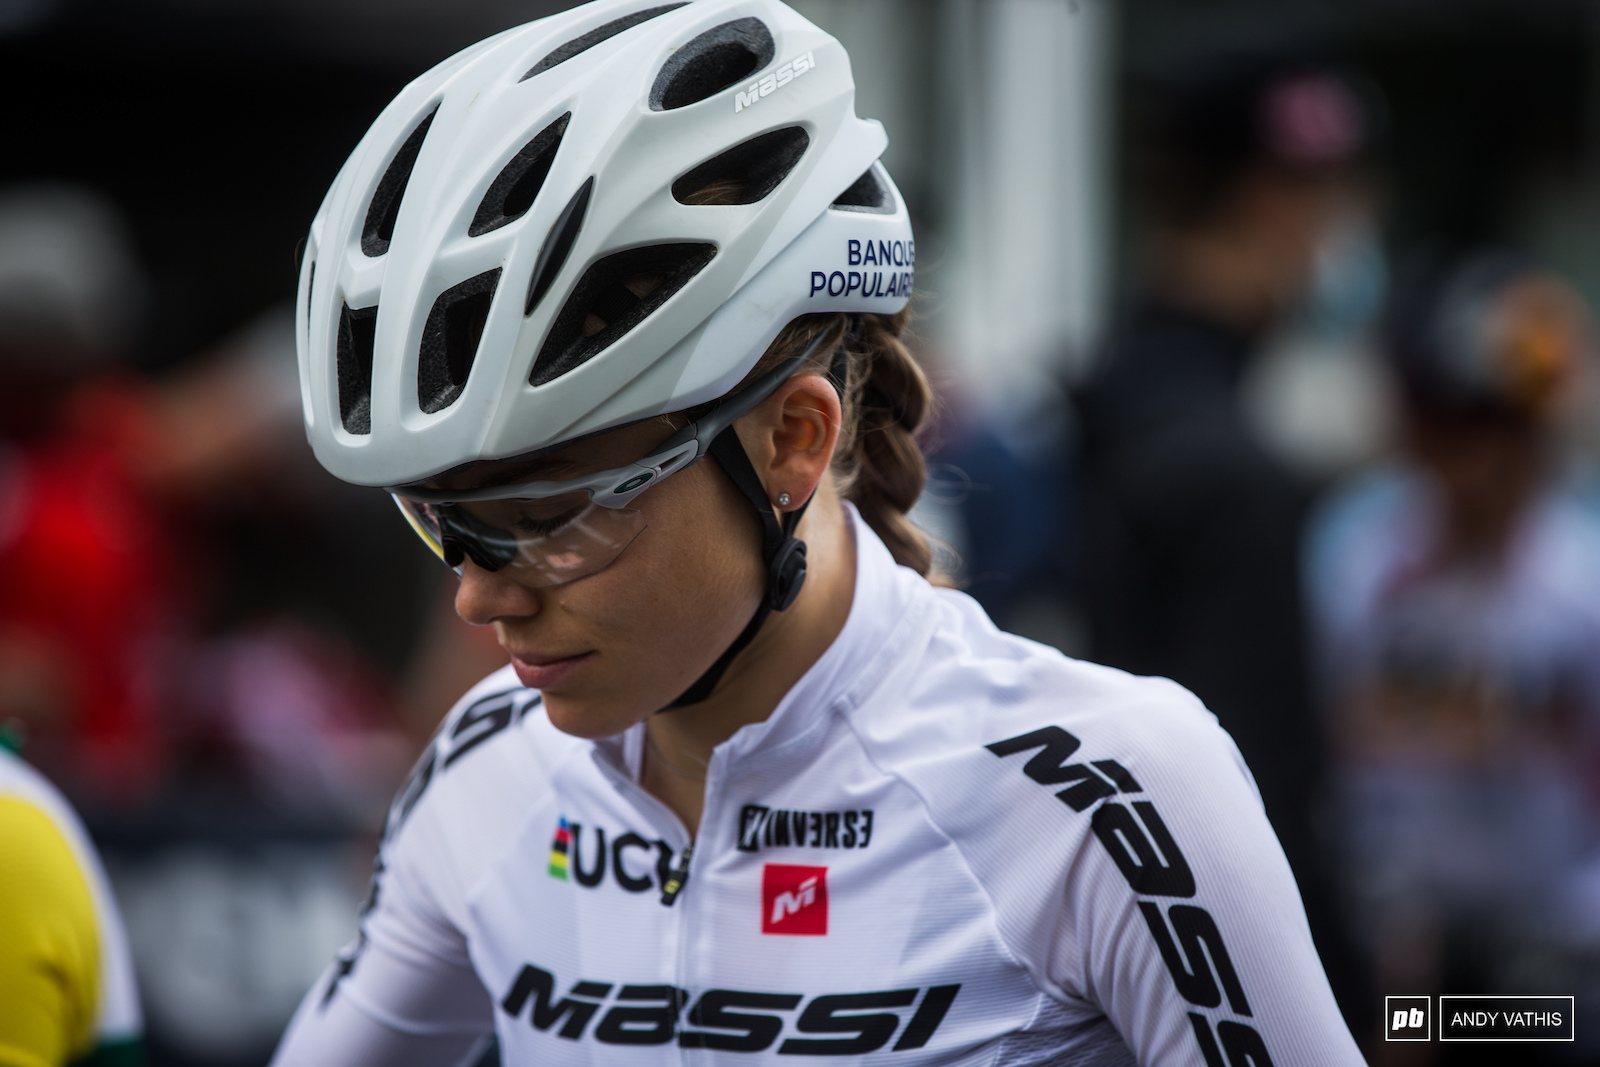 Loana Lecomte has been a force to be reckoned with. She s raced more solo laps recently as if she d been out for a training ride.